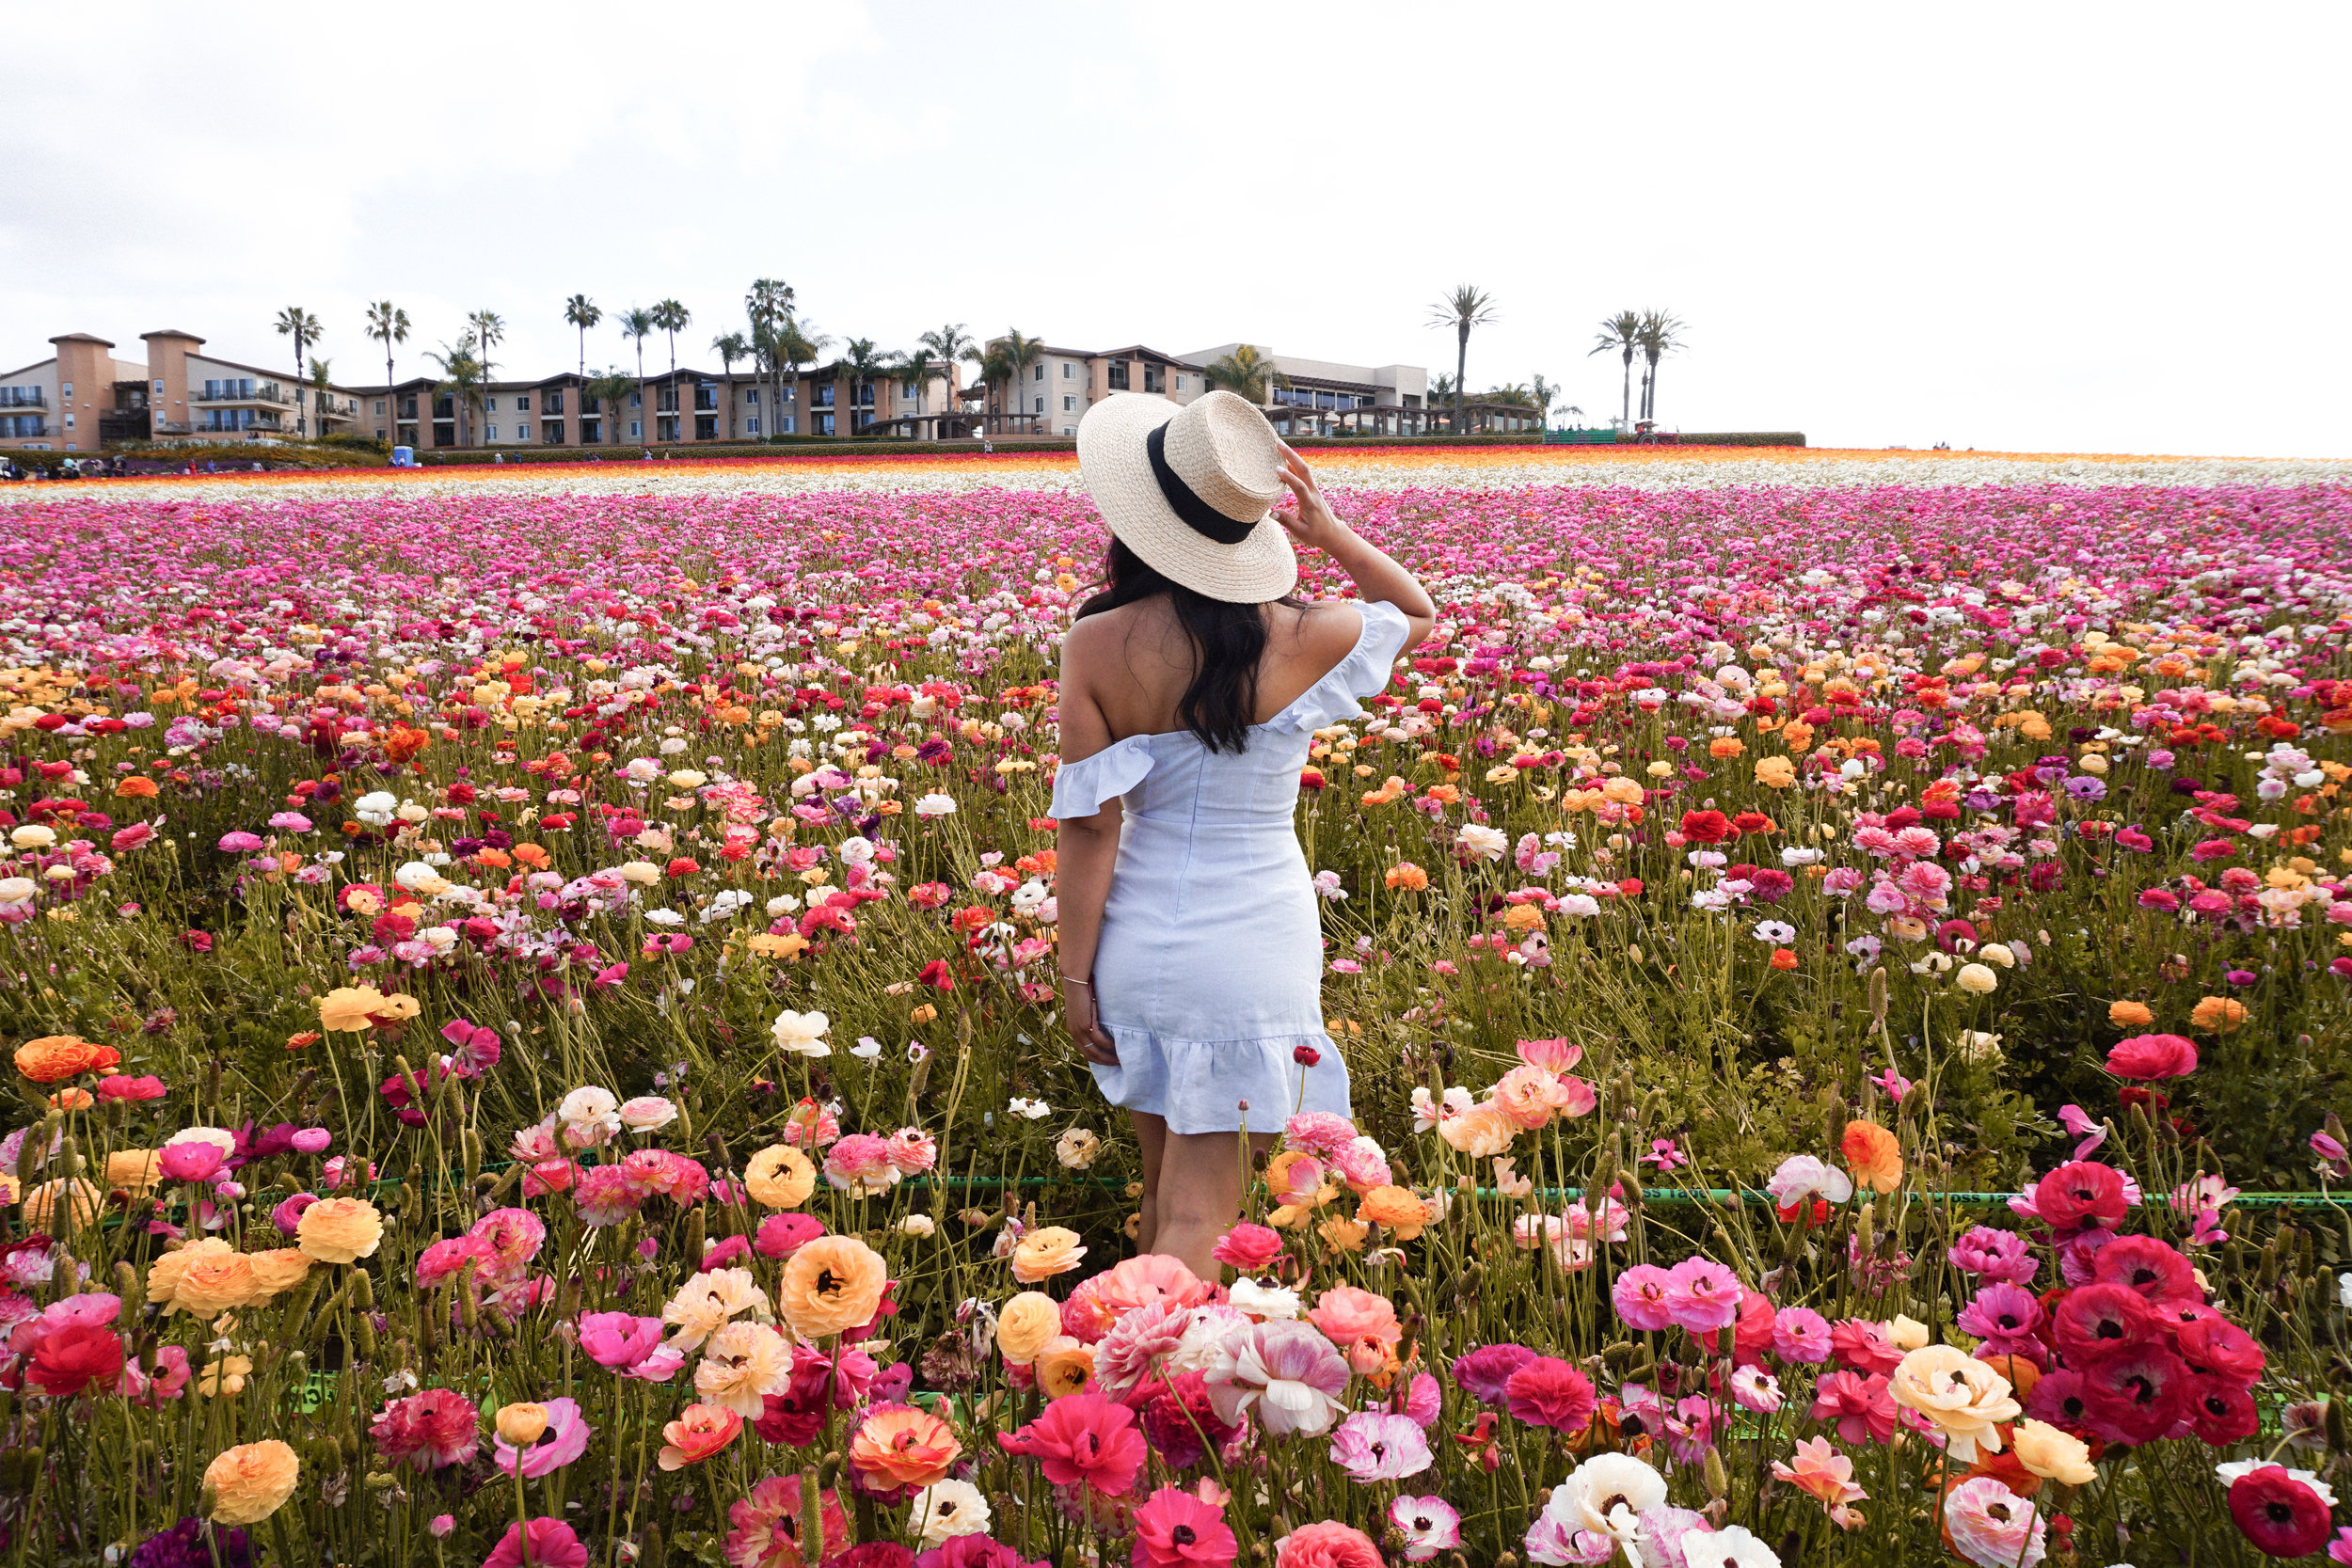 flower fields4.jpg